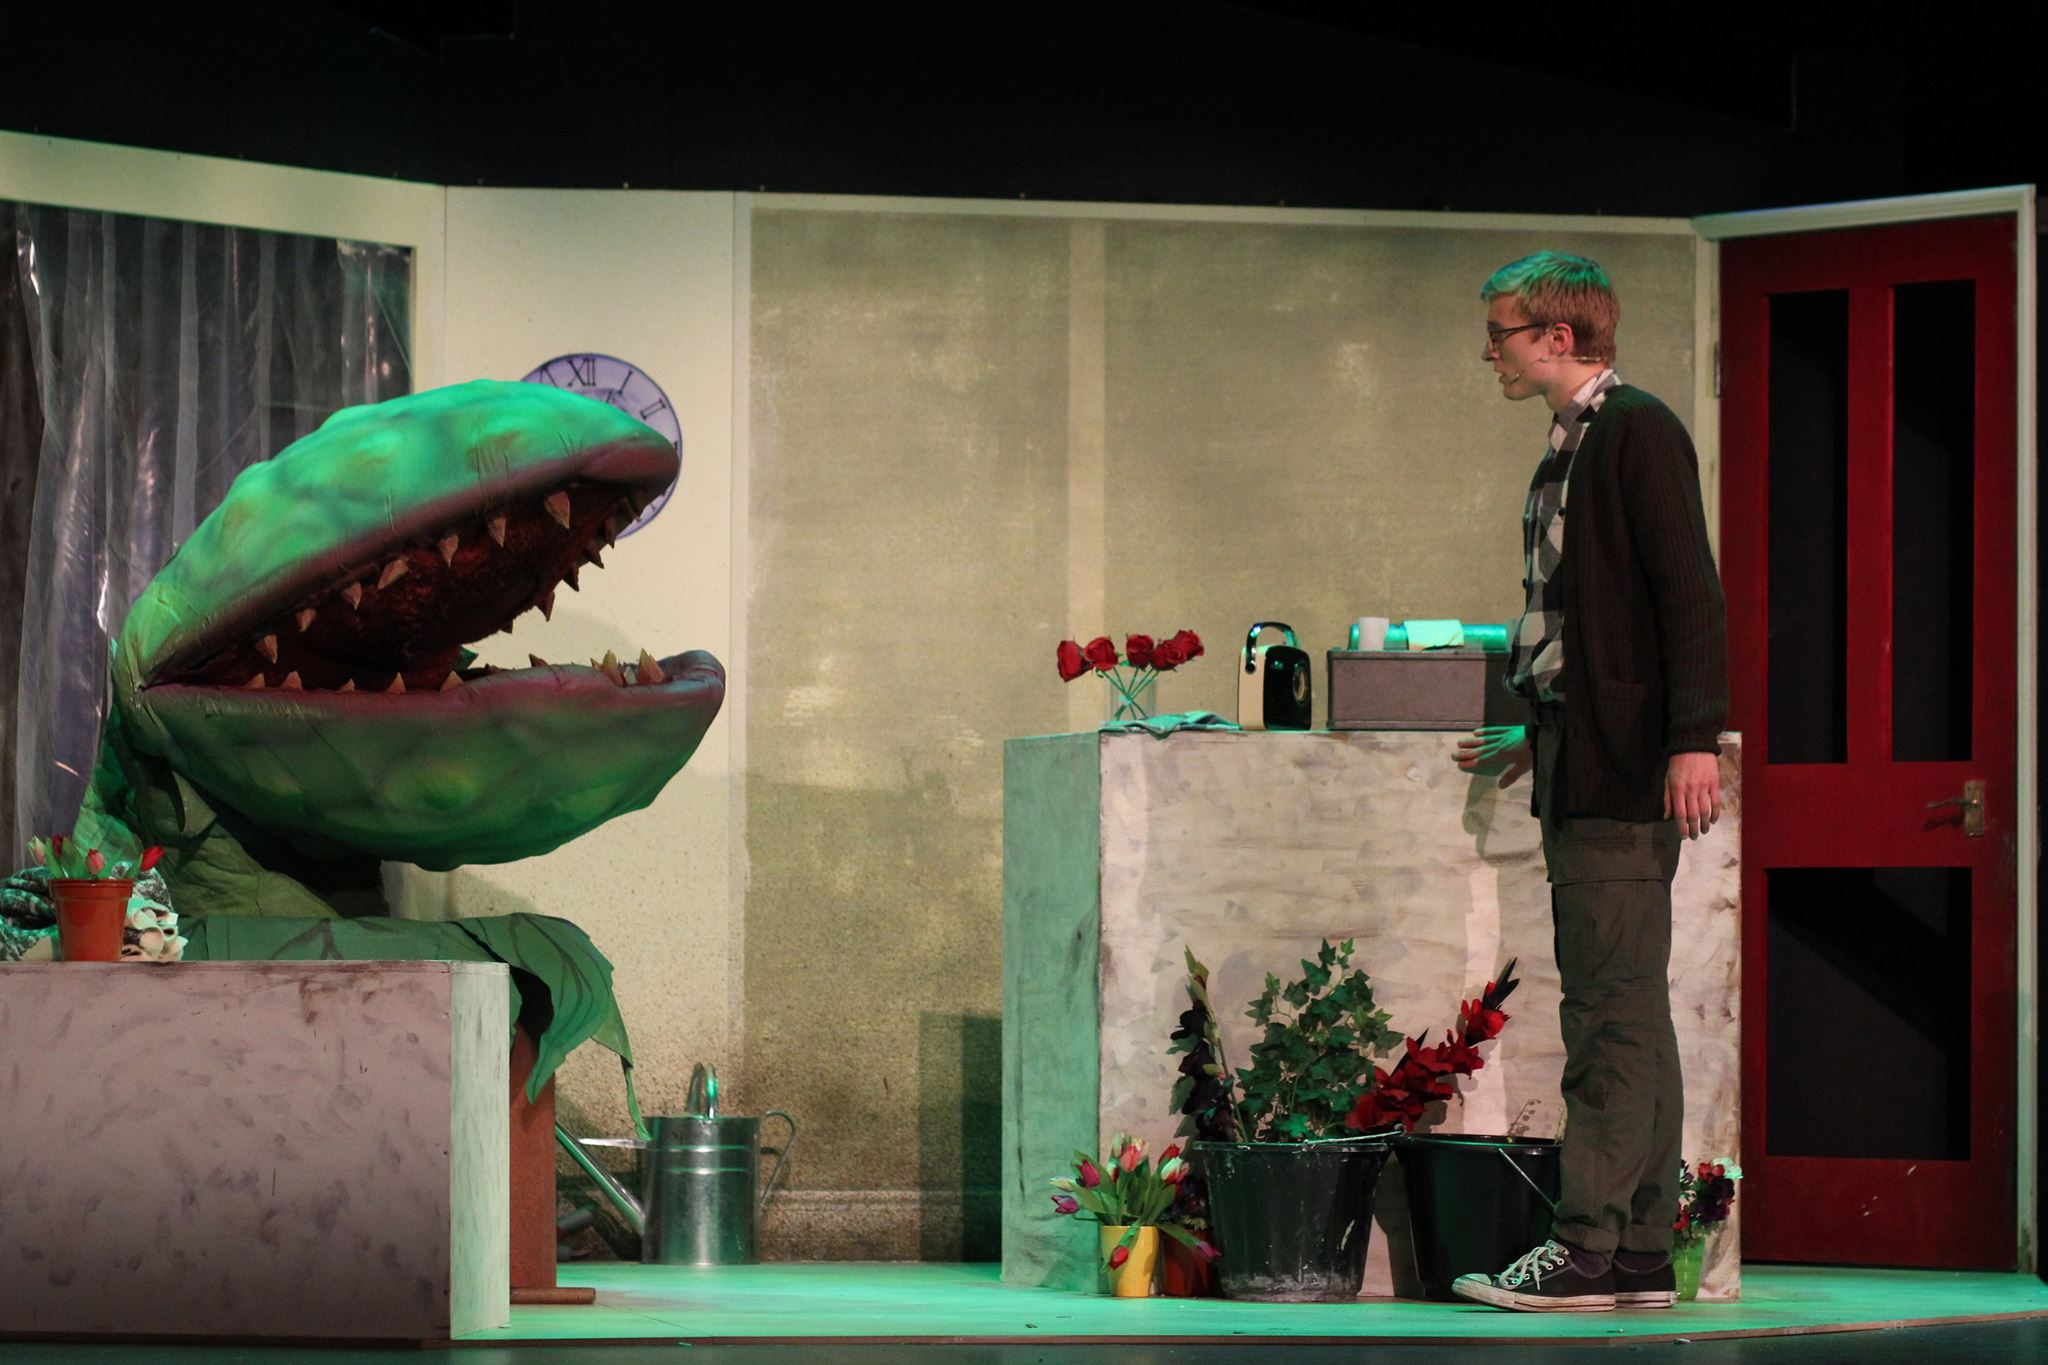 An Array of Delights in this Little Shop of Horrors